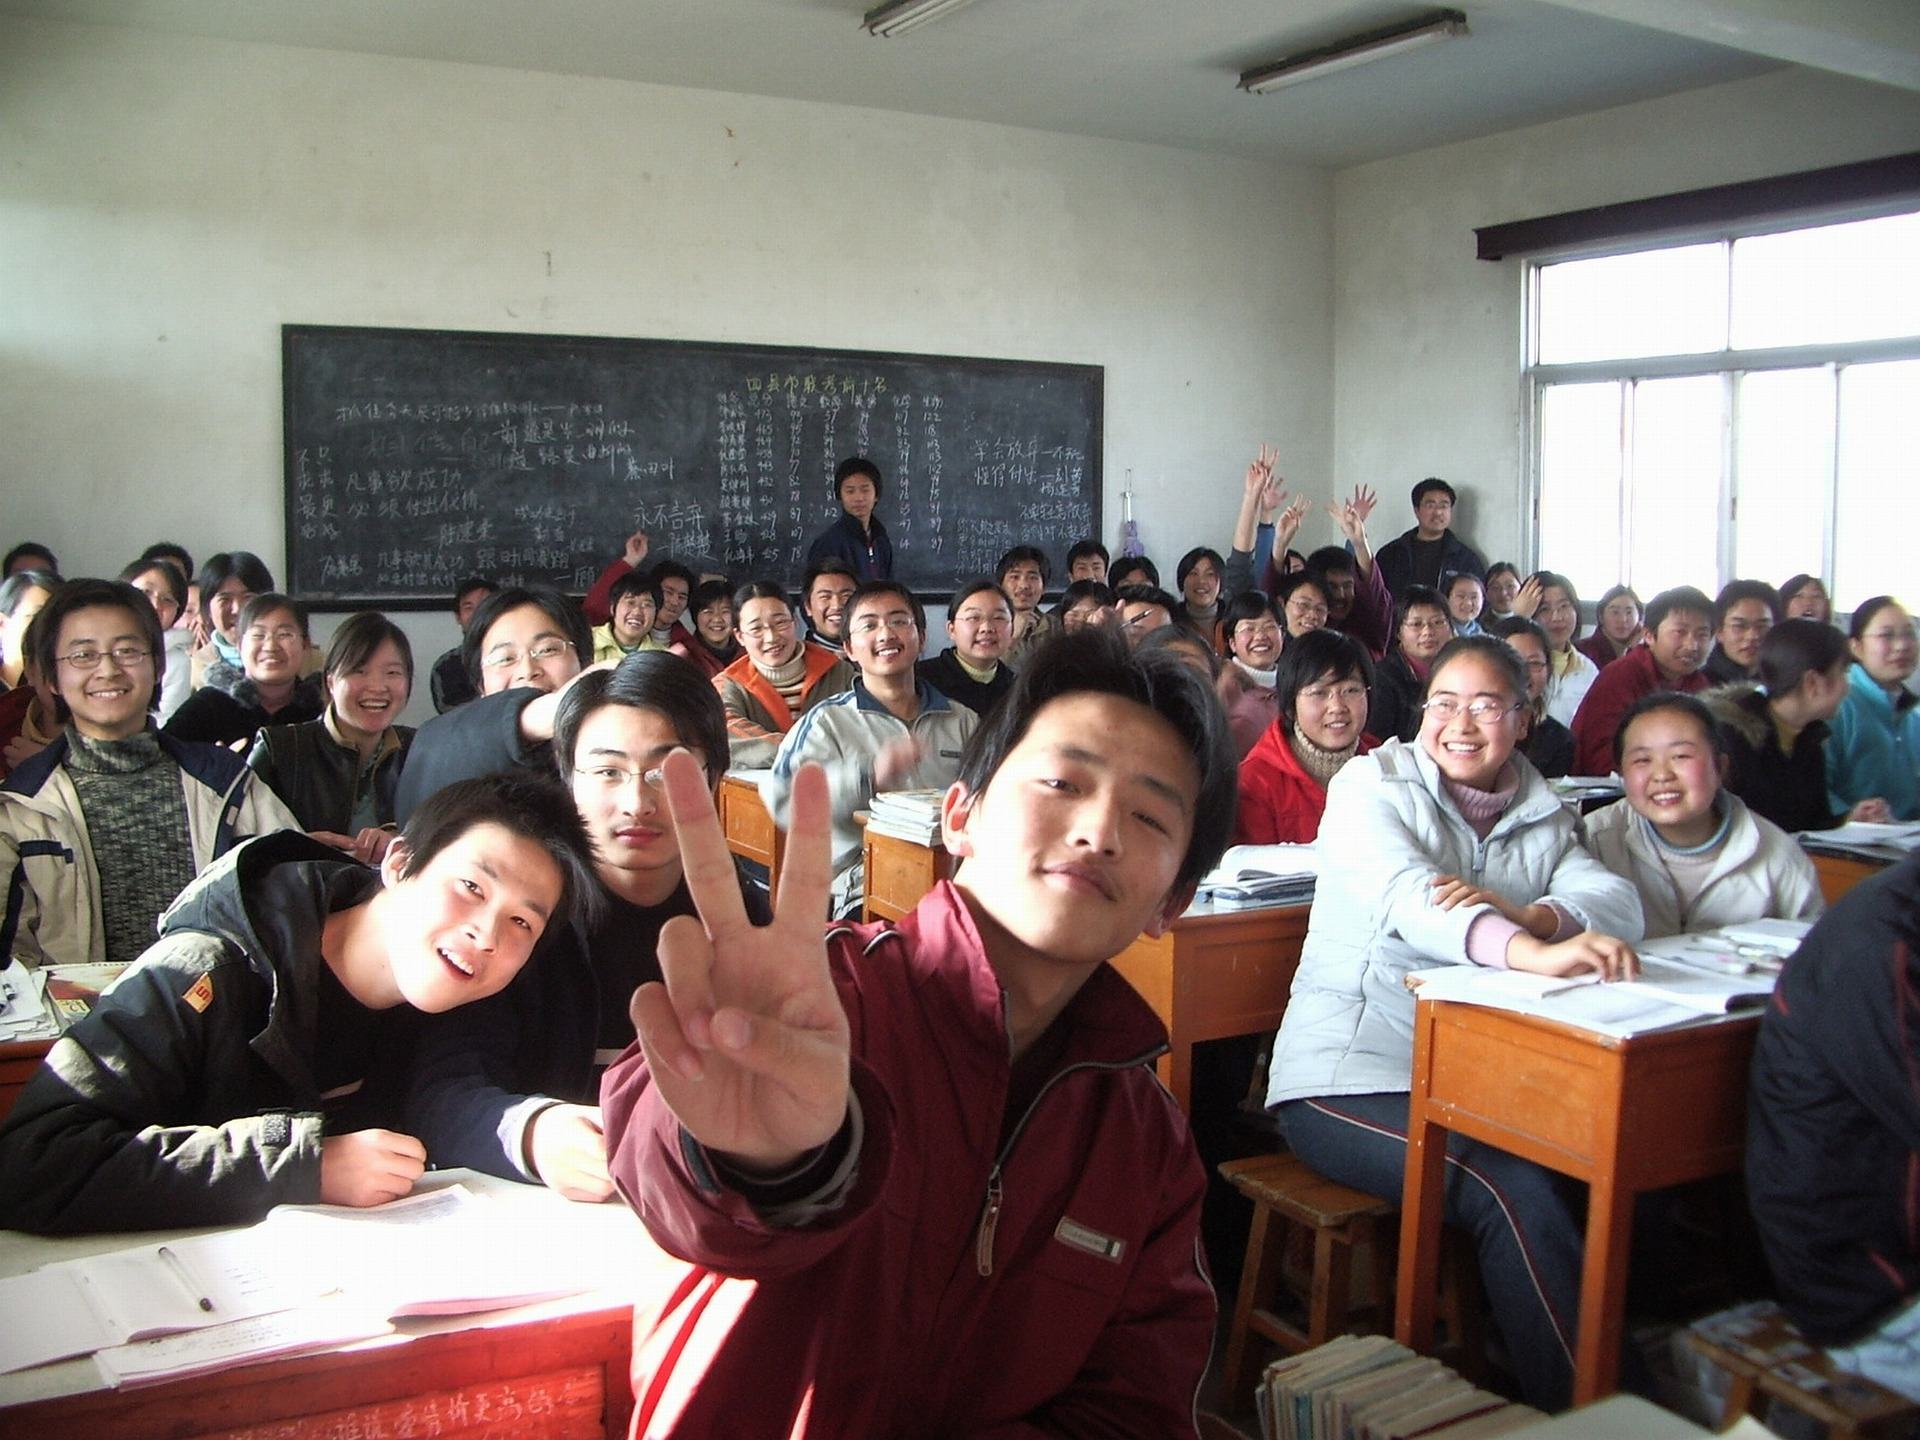 Classroom full of students